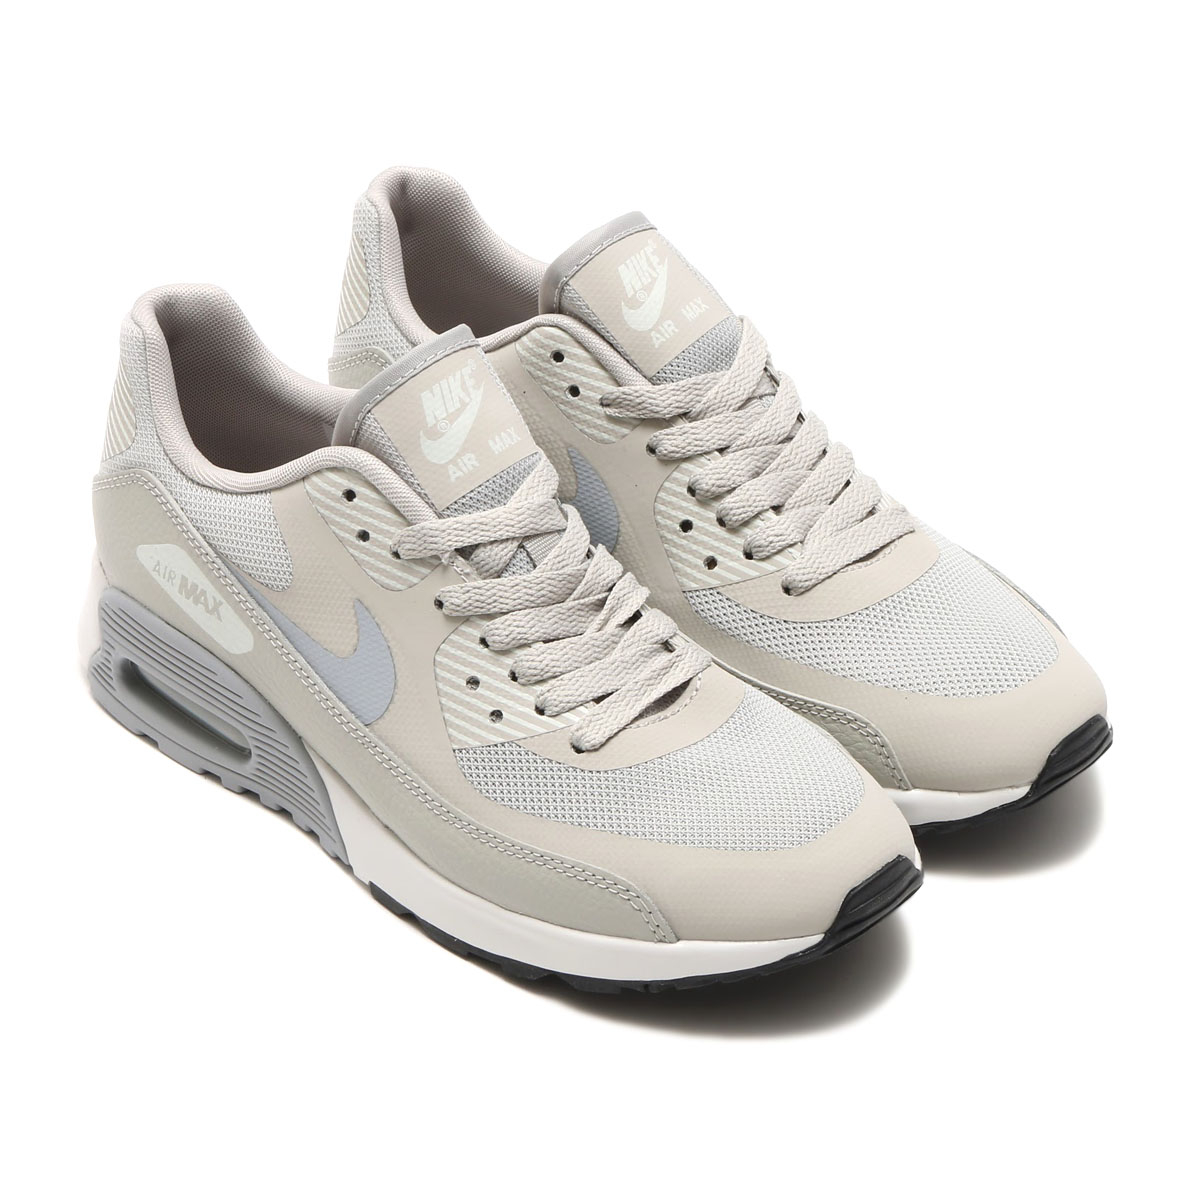 quality design d01dd 8dfb4 The full-length PU mid sole which was equipped with a large heel air sole  unit. The out sole is a waffle rubber design. AIR MAX 90 ...